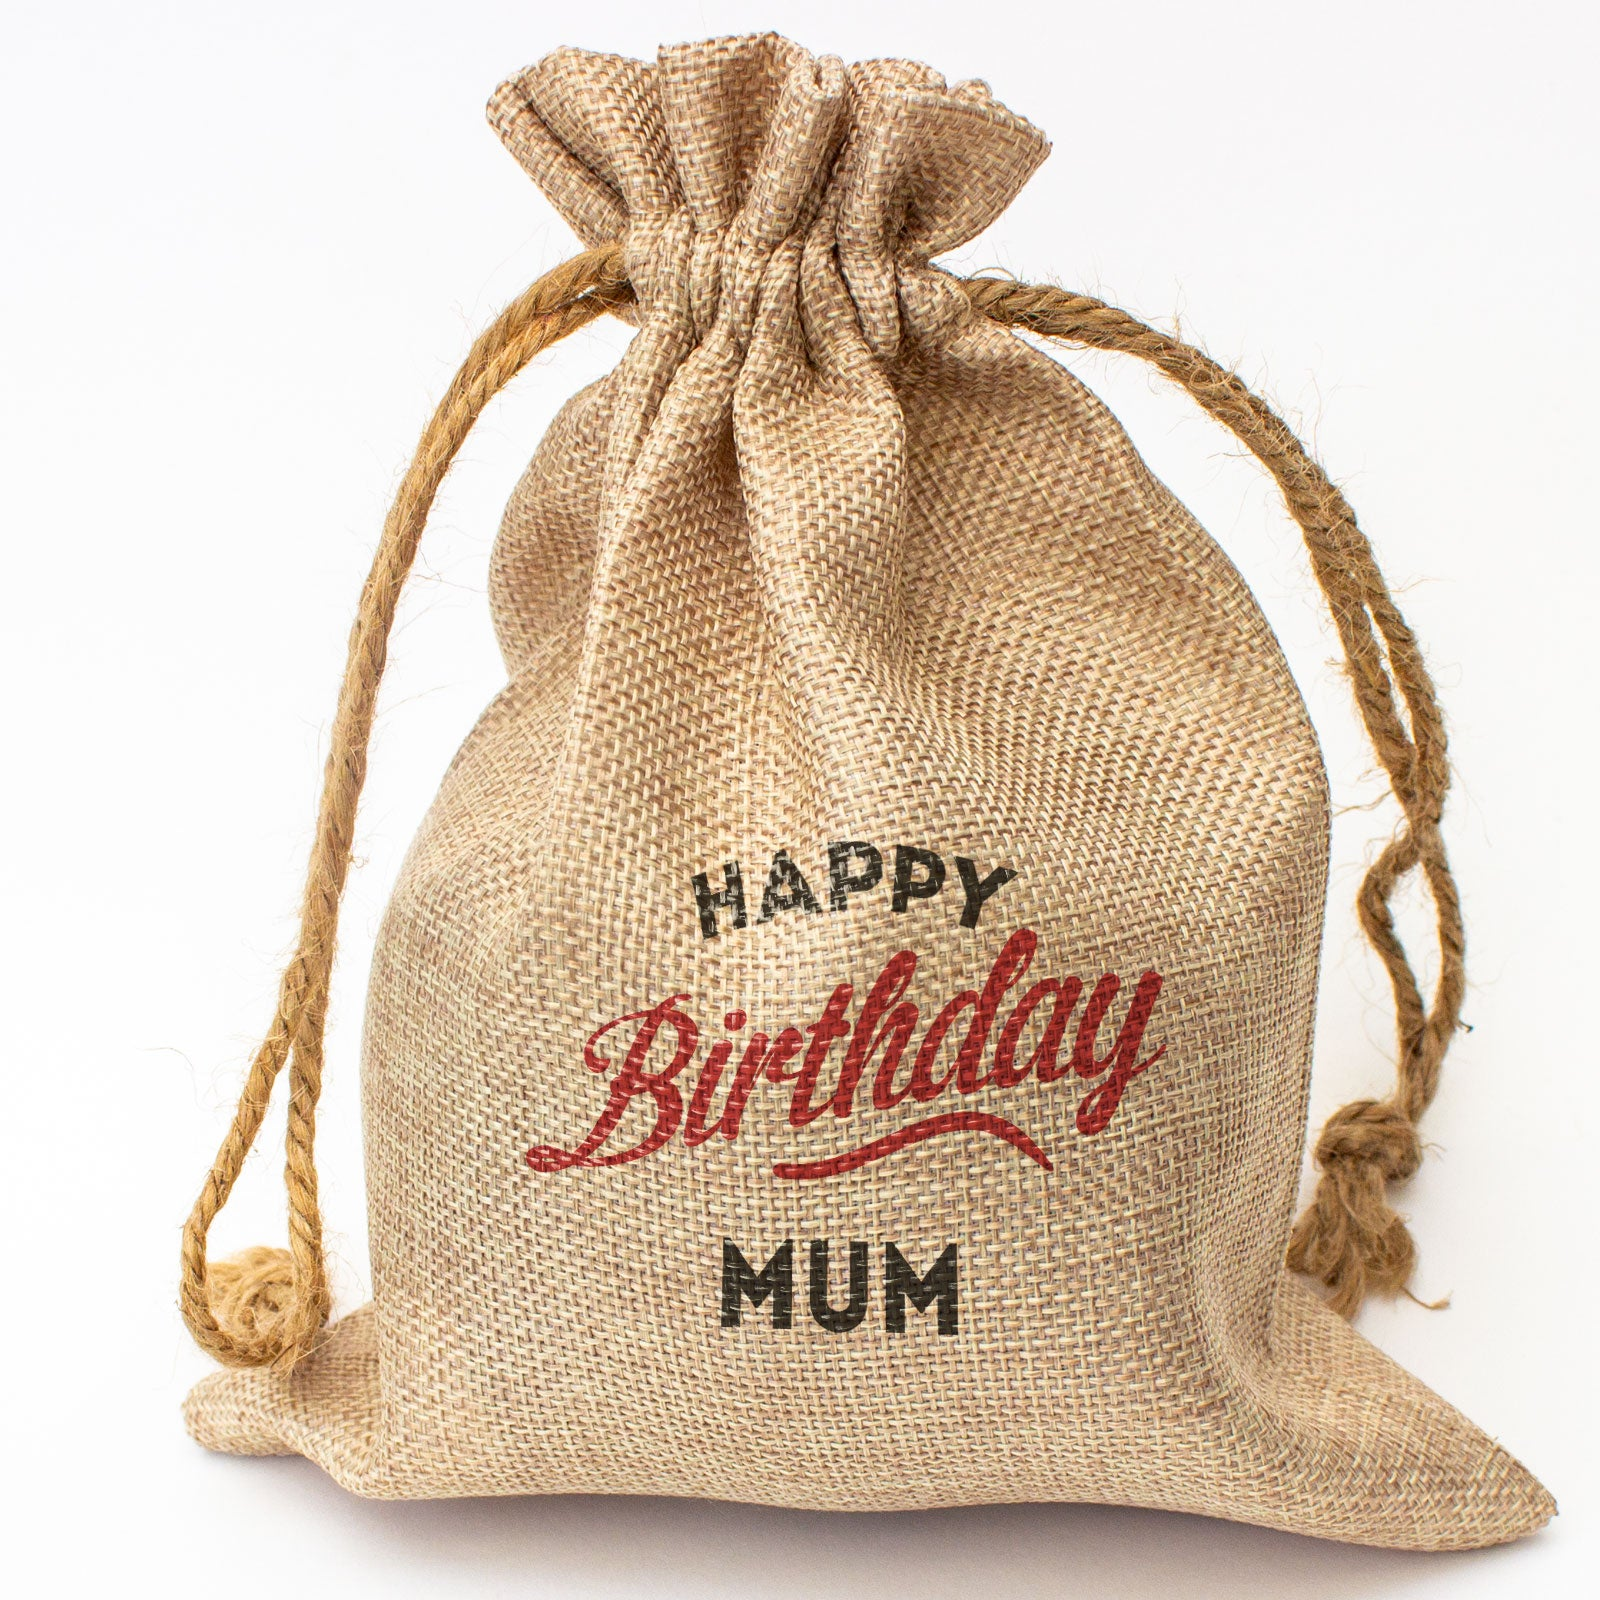 Happy Birthday Mum - Toasted Coconut Bowl Candle – Soy Wax - Gift Present